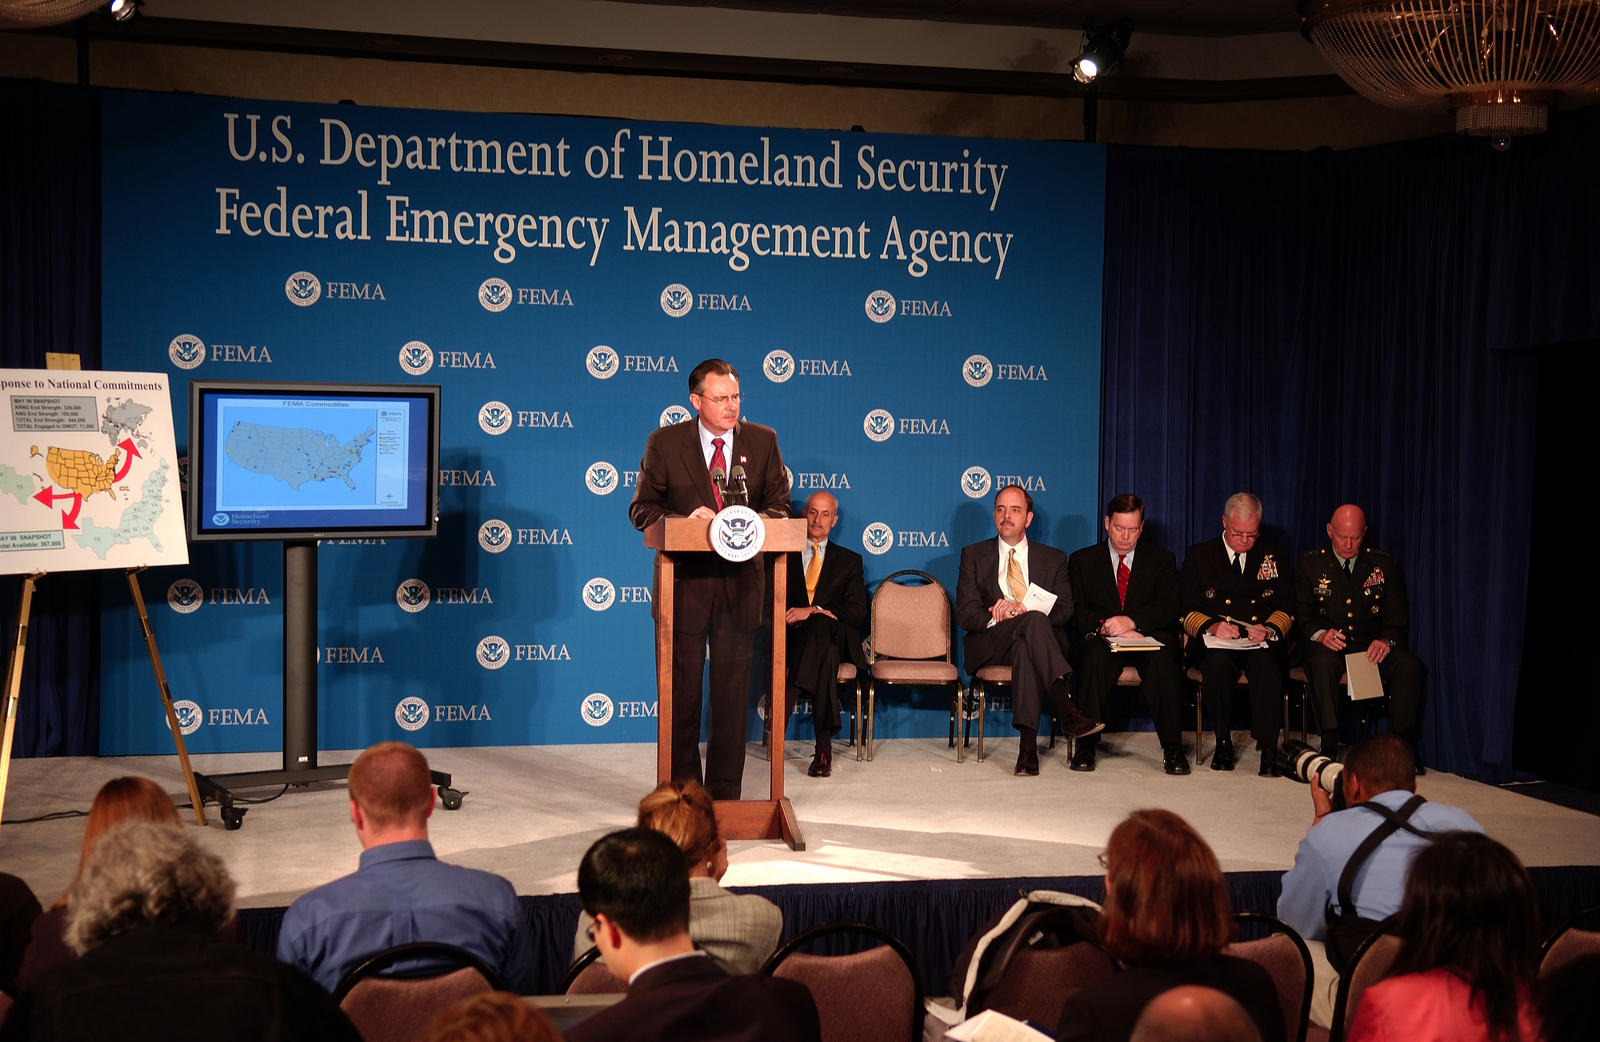 Washington, DC, May 23, 2006 -- Acting FEMA Director David Paulison (at Podium), (l-r)Secretary fo the Department of Homeland Security Michael Chertoff, Under Secretary for Preparedness George Foresman, Assistant Secretary of Defense Paul McHale, Admiral Timothy Keating and Lt. General Steven Blum participate in a press briefing on preparations for the 2006 hurricane season.  FEMA/Bill Koplitz